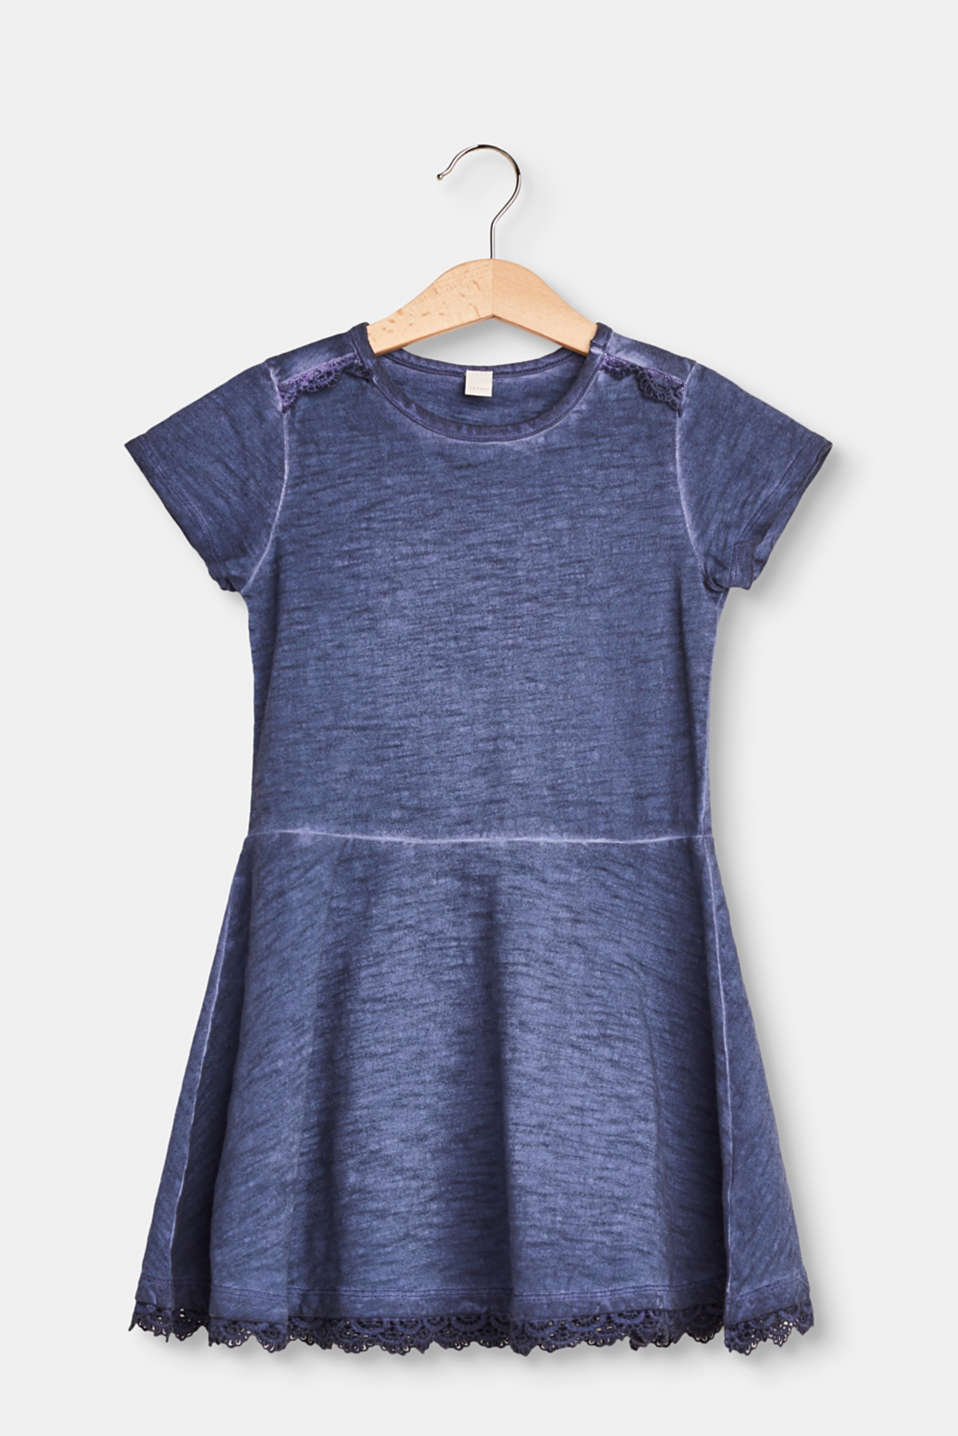 Easy to wear! This dress is exquisitely detailed yet casual.